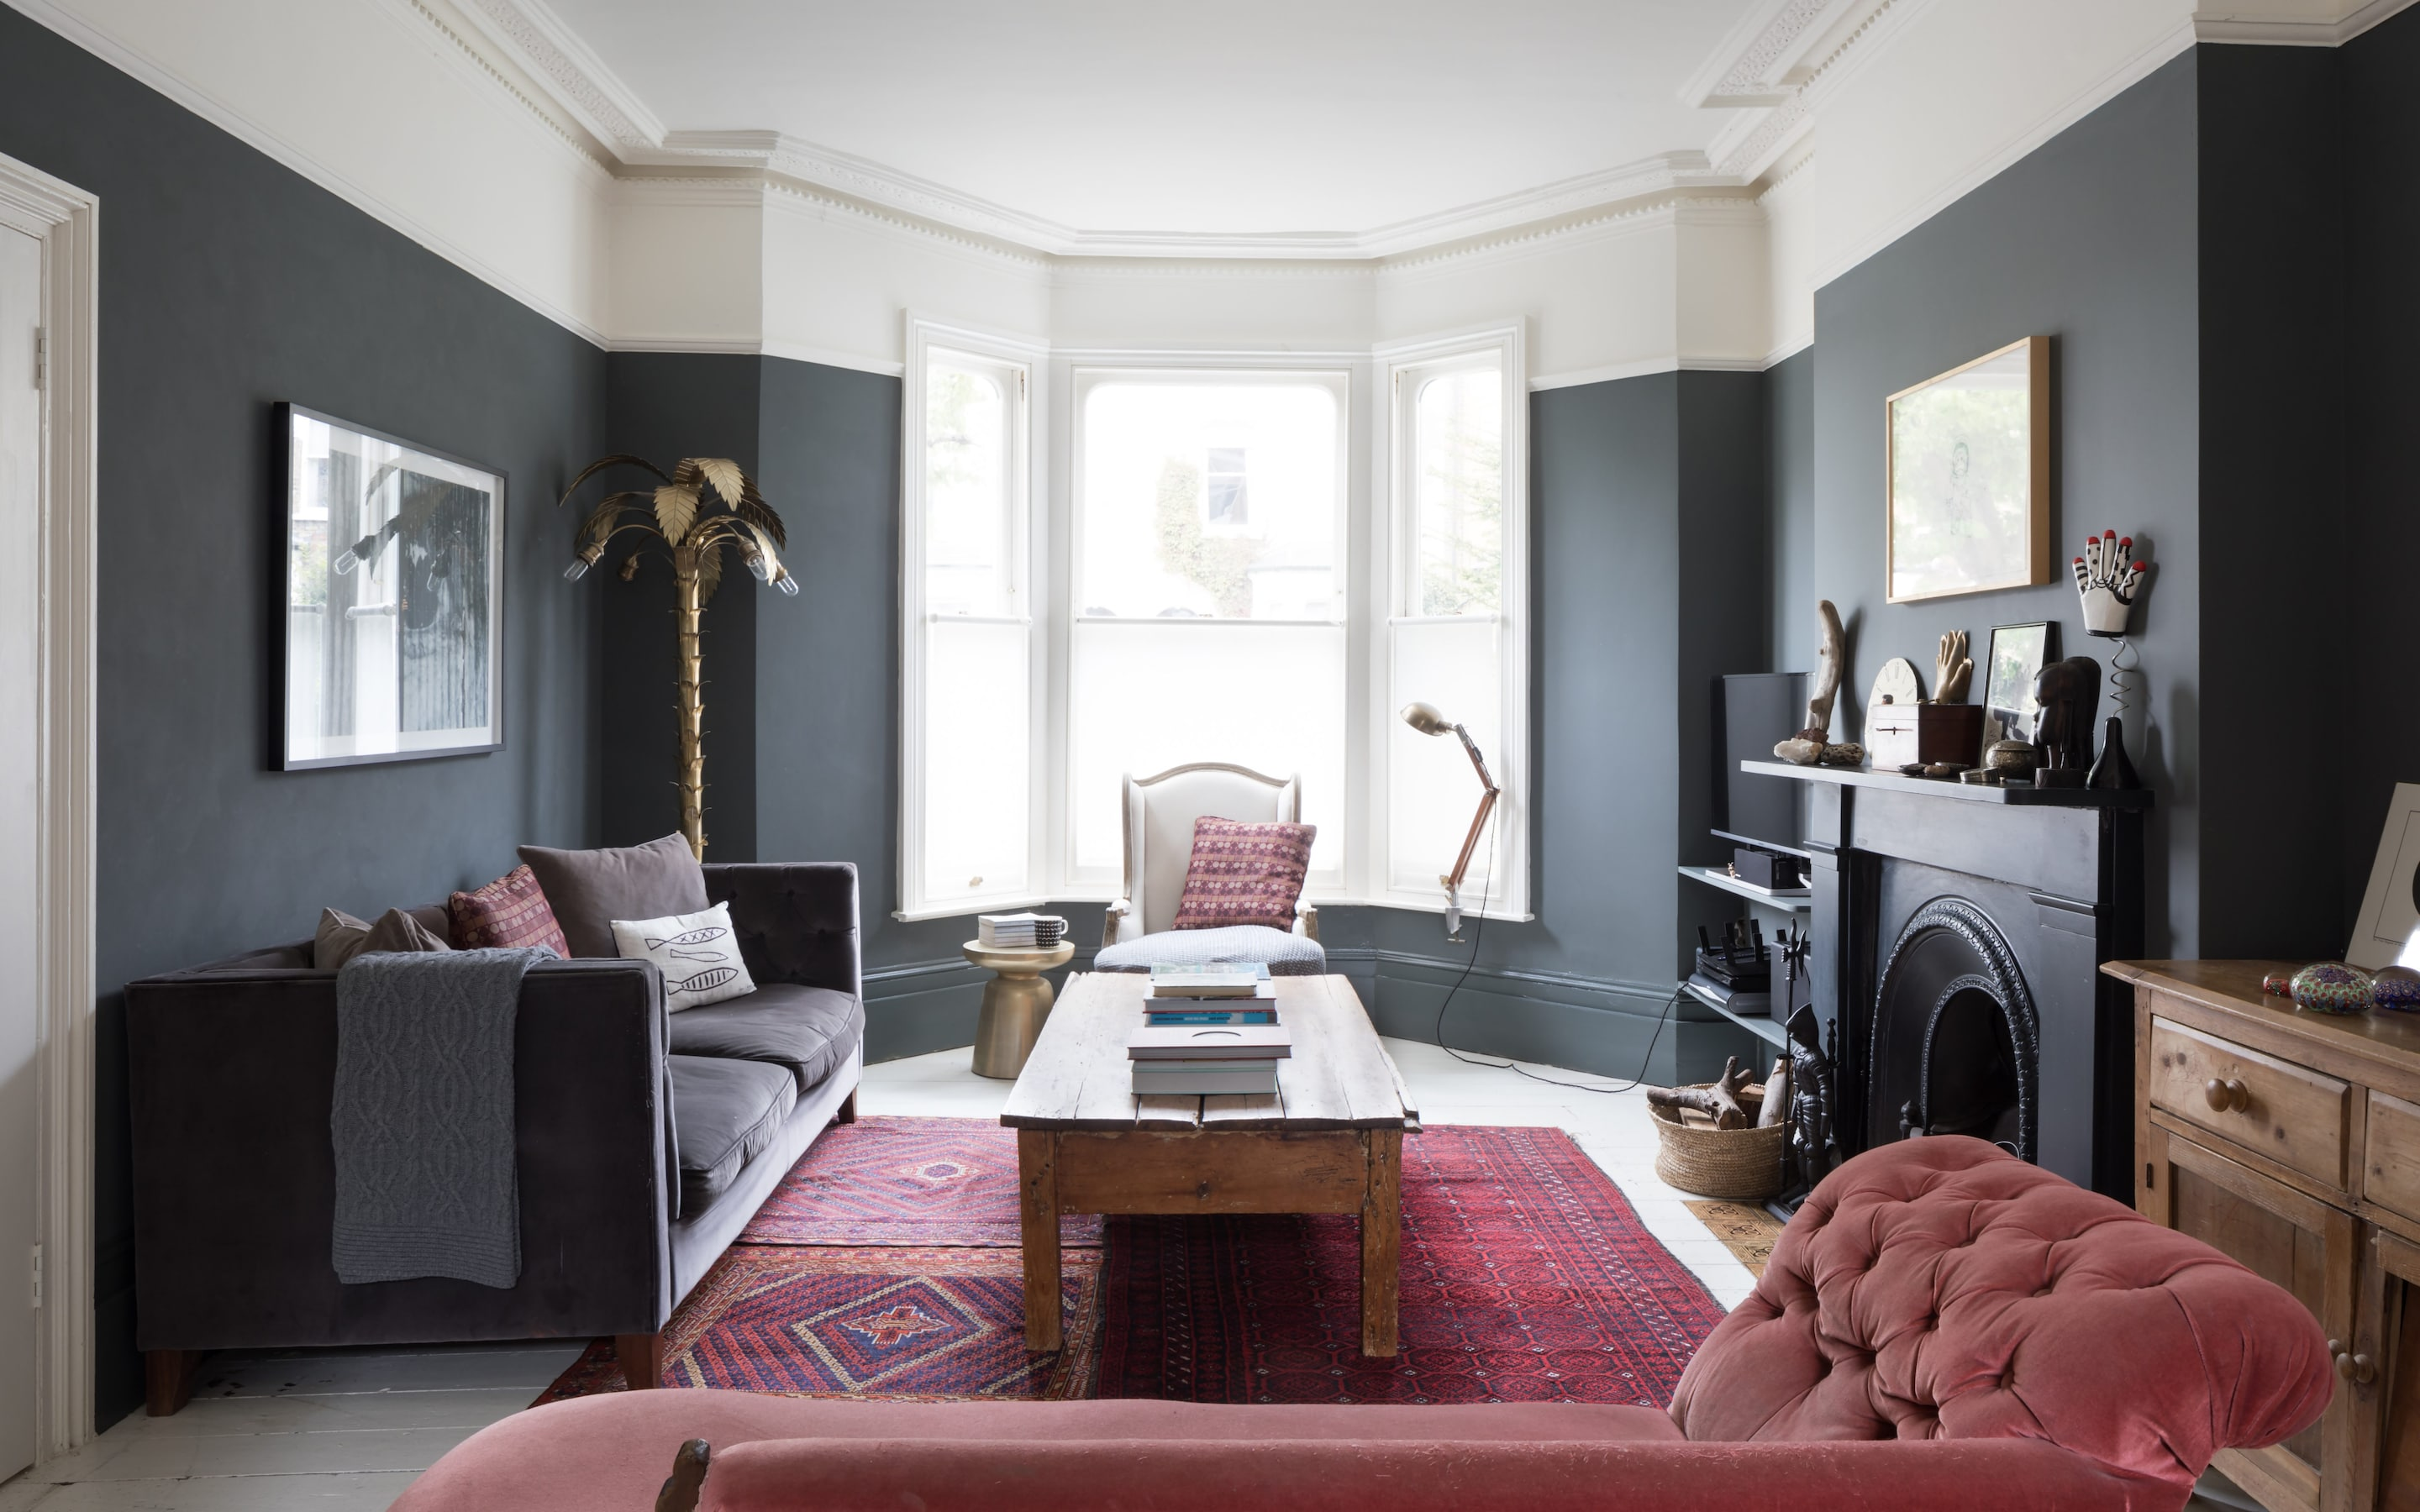 decorating ideas for living rooms with grey walls the room missoula mt 50 shades of inside top blogger kate watson smyth s london home is wall colour farrow ball down pipe and fireplace